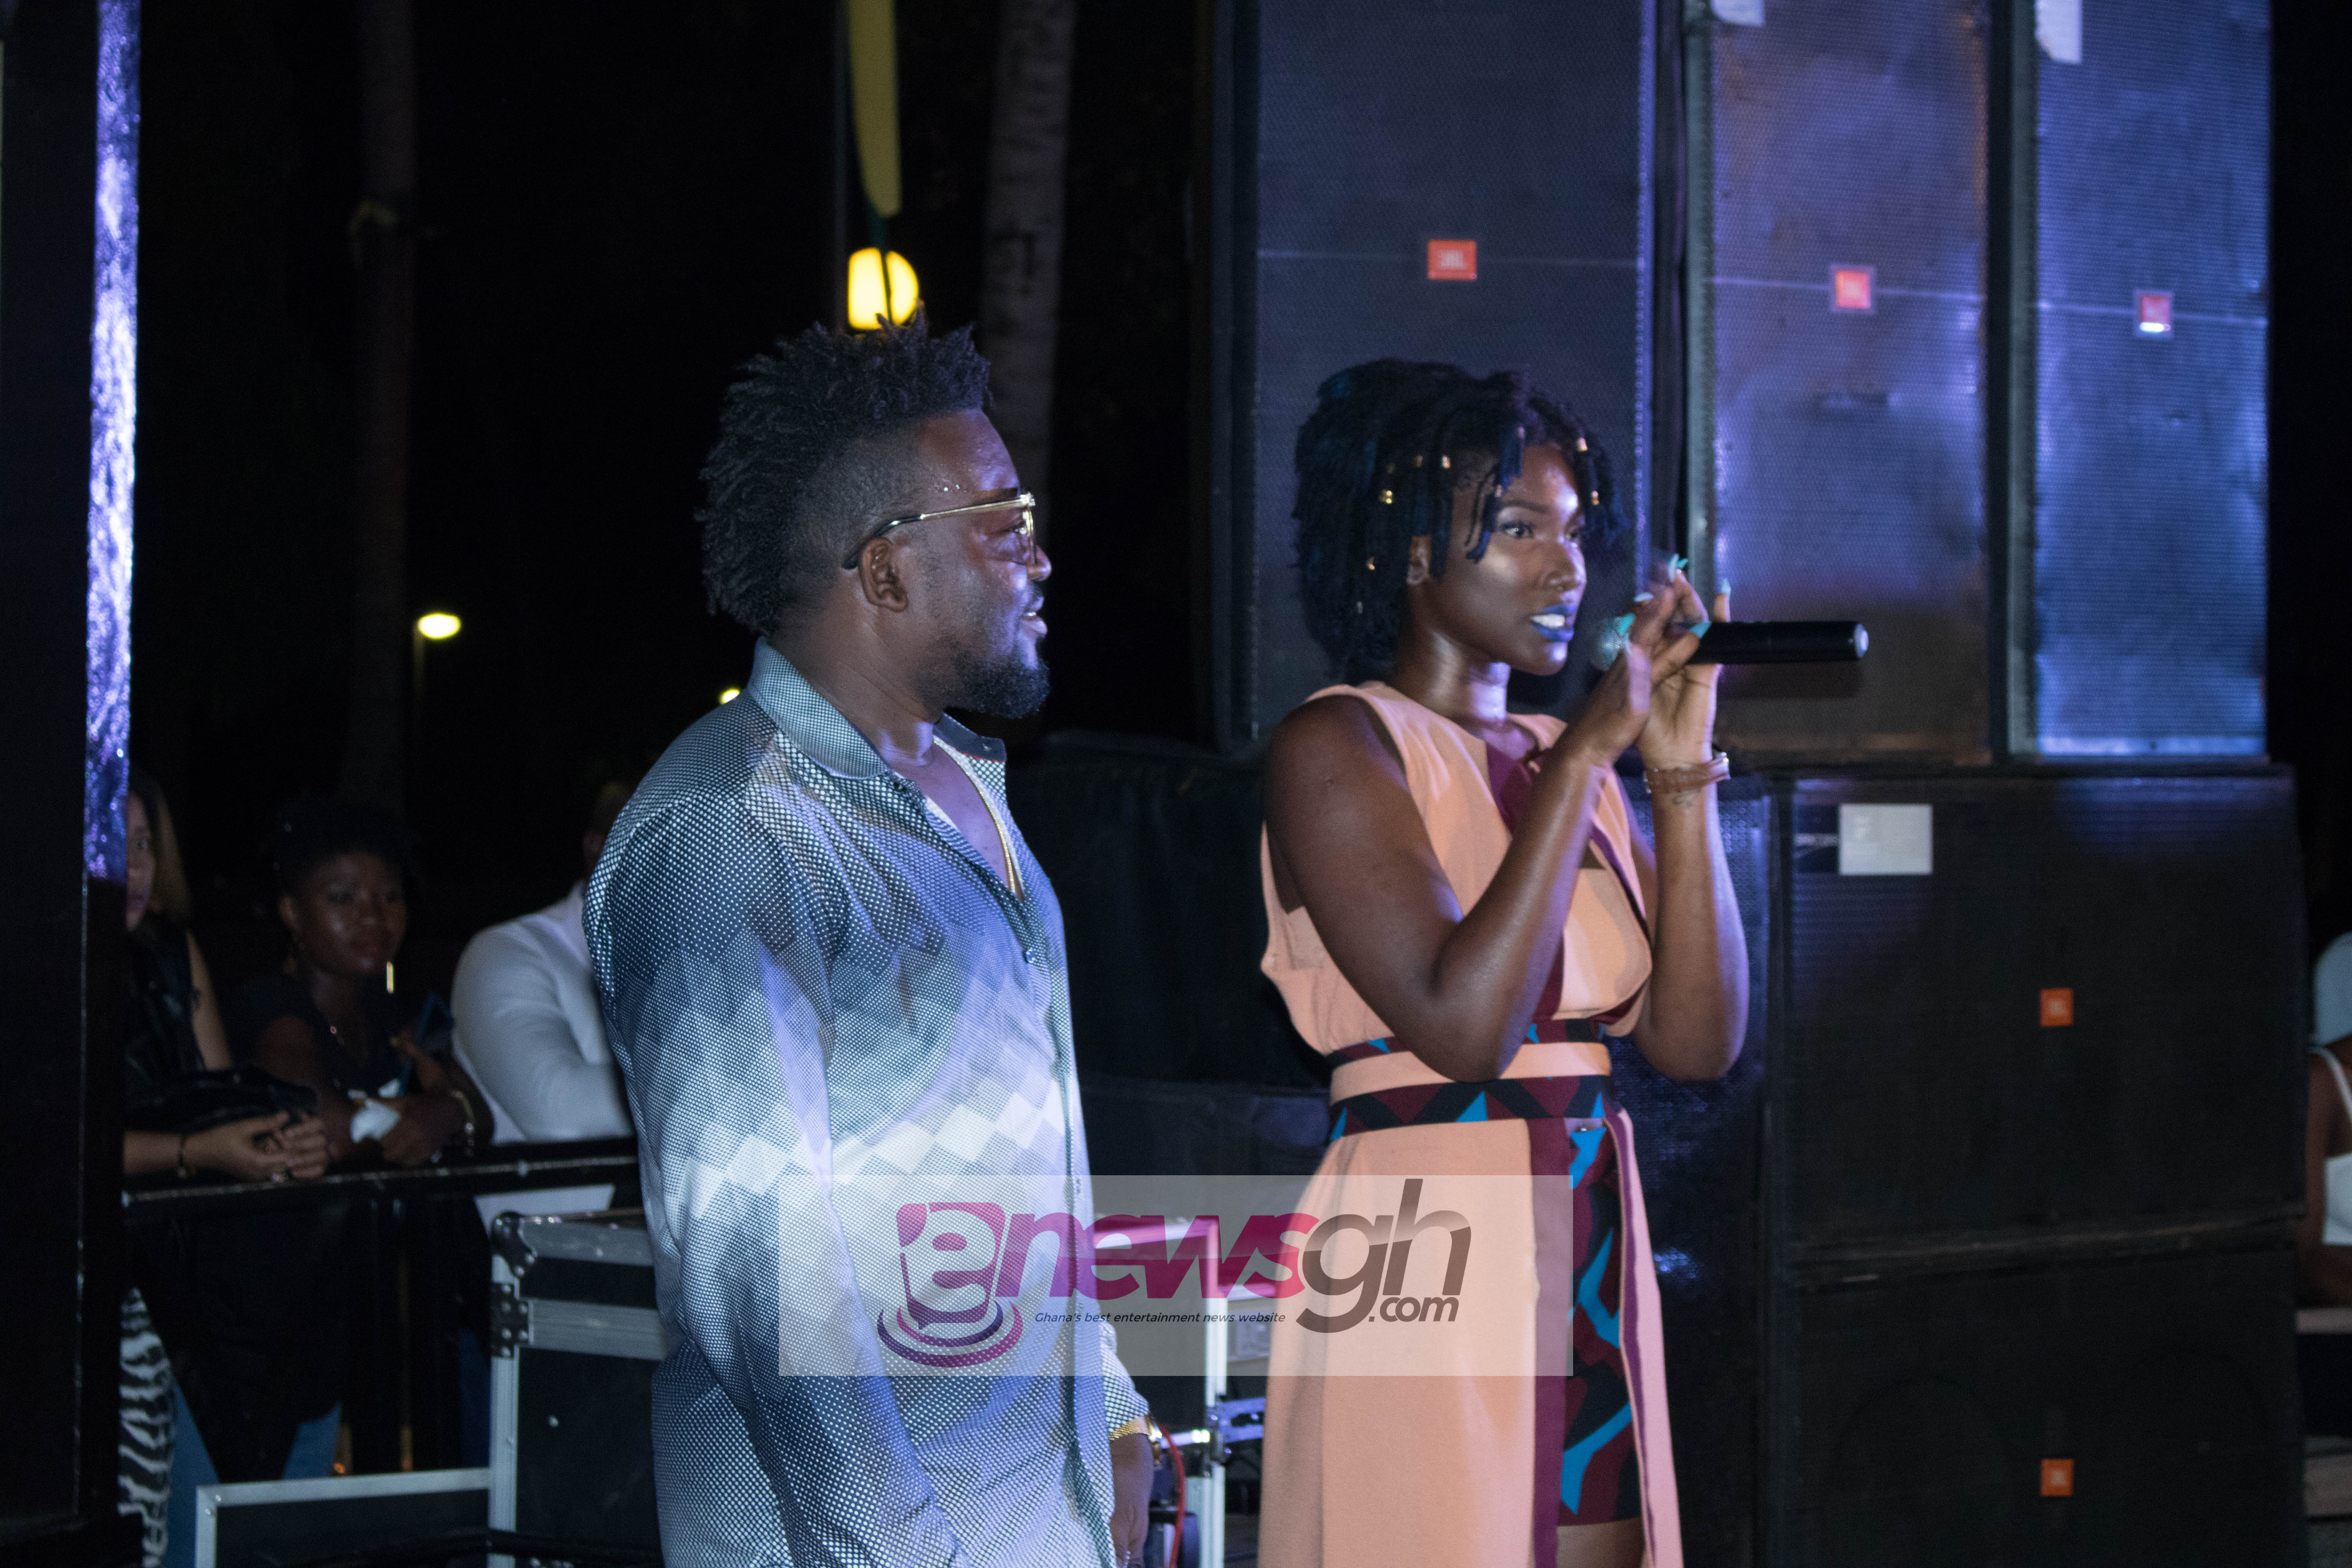 Ebony launches first album 'Bonyfied', set to host own concert Dec 9